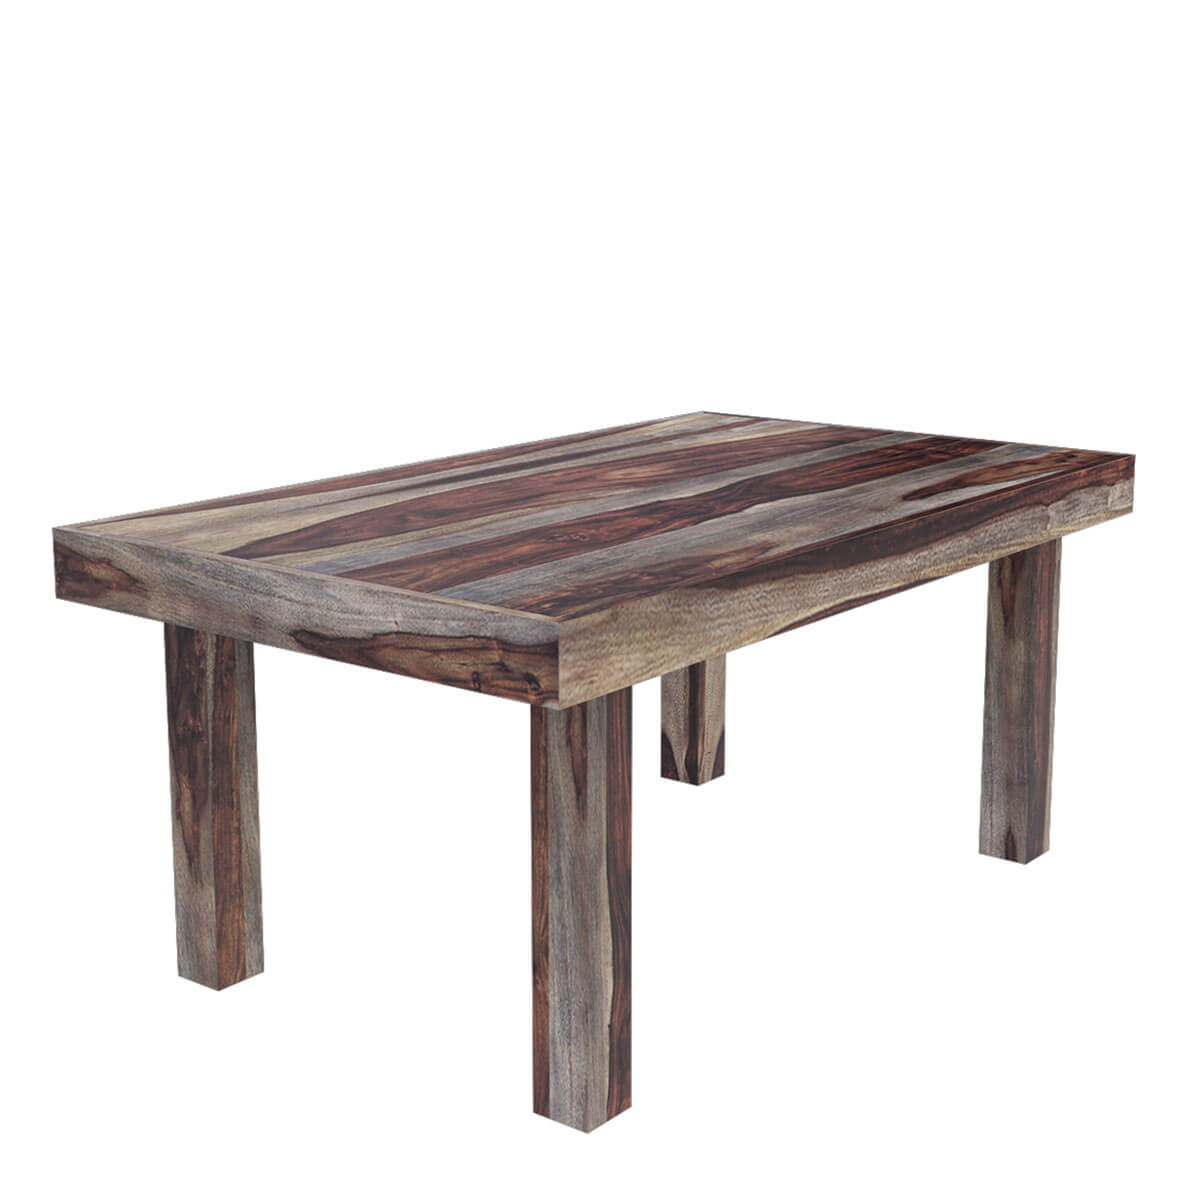 Casual Contemporary Dark Wood Dining Table Chairs Dining: Frisco Modern Solid Wood Casual Rustic Dining Room Table